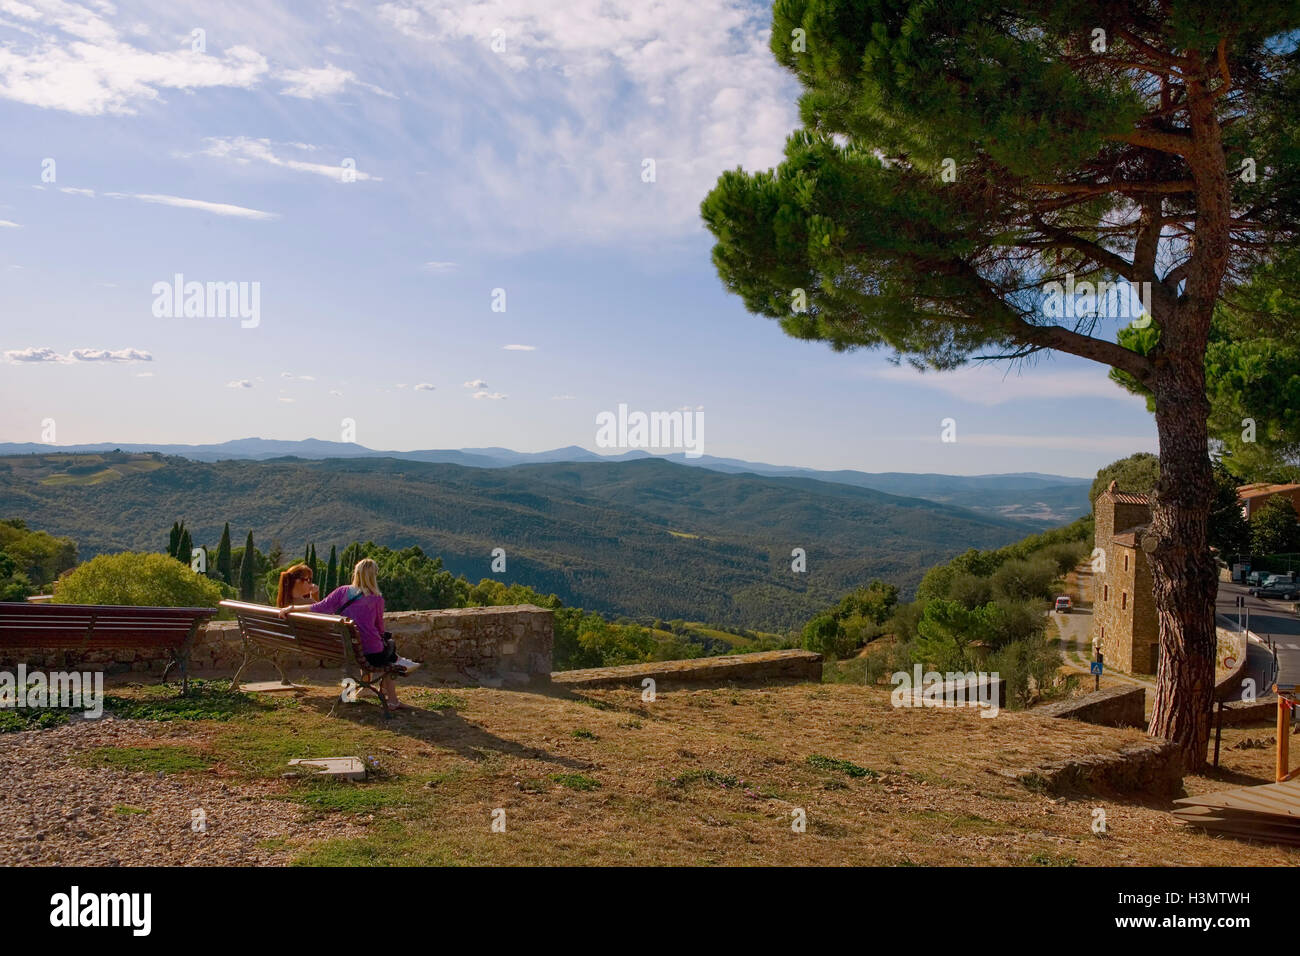 View across the Tuscan countryside of Val d'Orcia, from Viale della Libertà, Montalcino, Siena, Italy - Stock Image